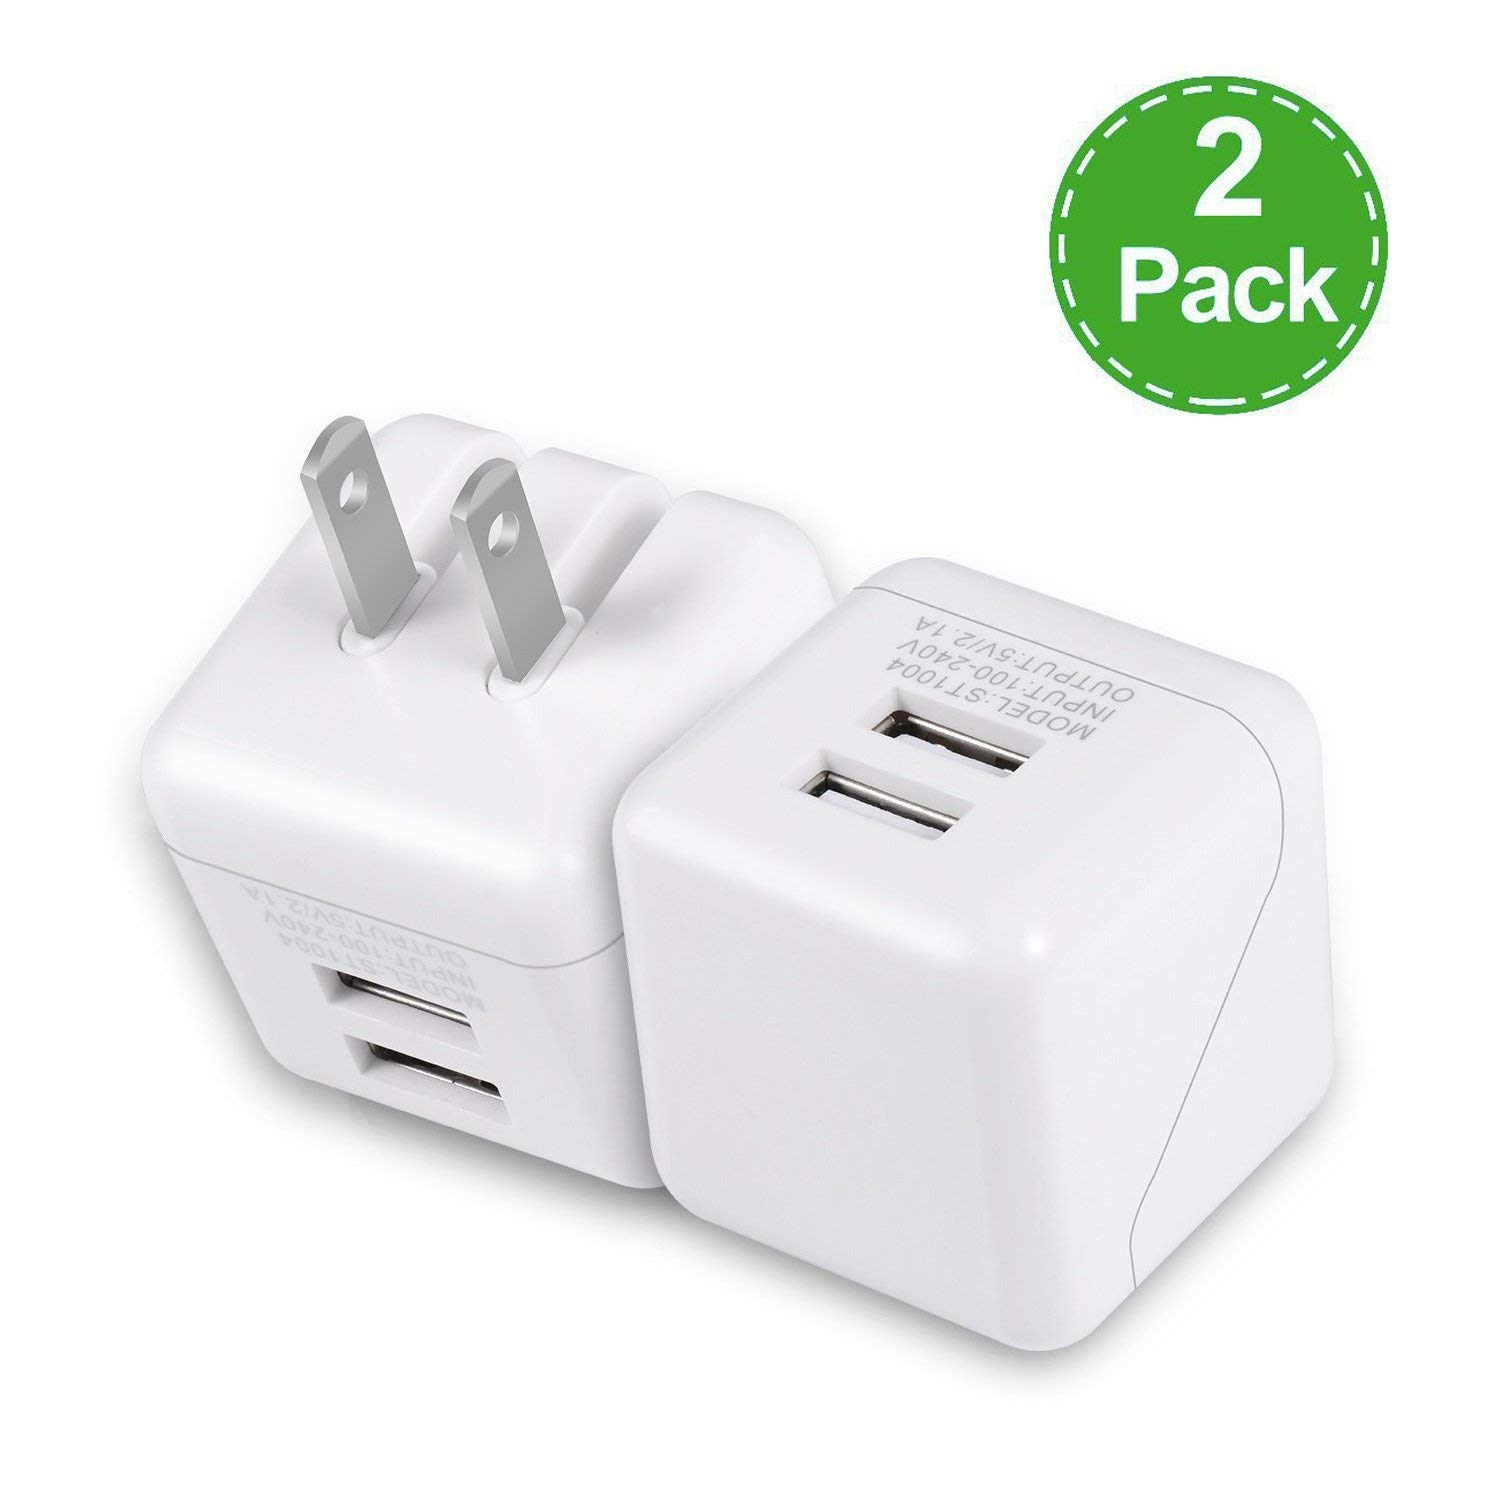 USB Wall Charger, 5V/2.1A Dual USB Wall Charger Fast Charger Portable Travel Charger with Foldable Plug for iPhone X/8/7/6s/6 Plus, iPad Pro/Air 2/mini 4, Galaxy S9/S8/S7 and More (2Pack)